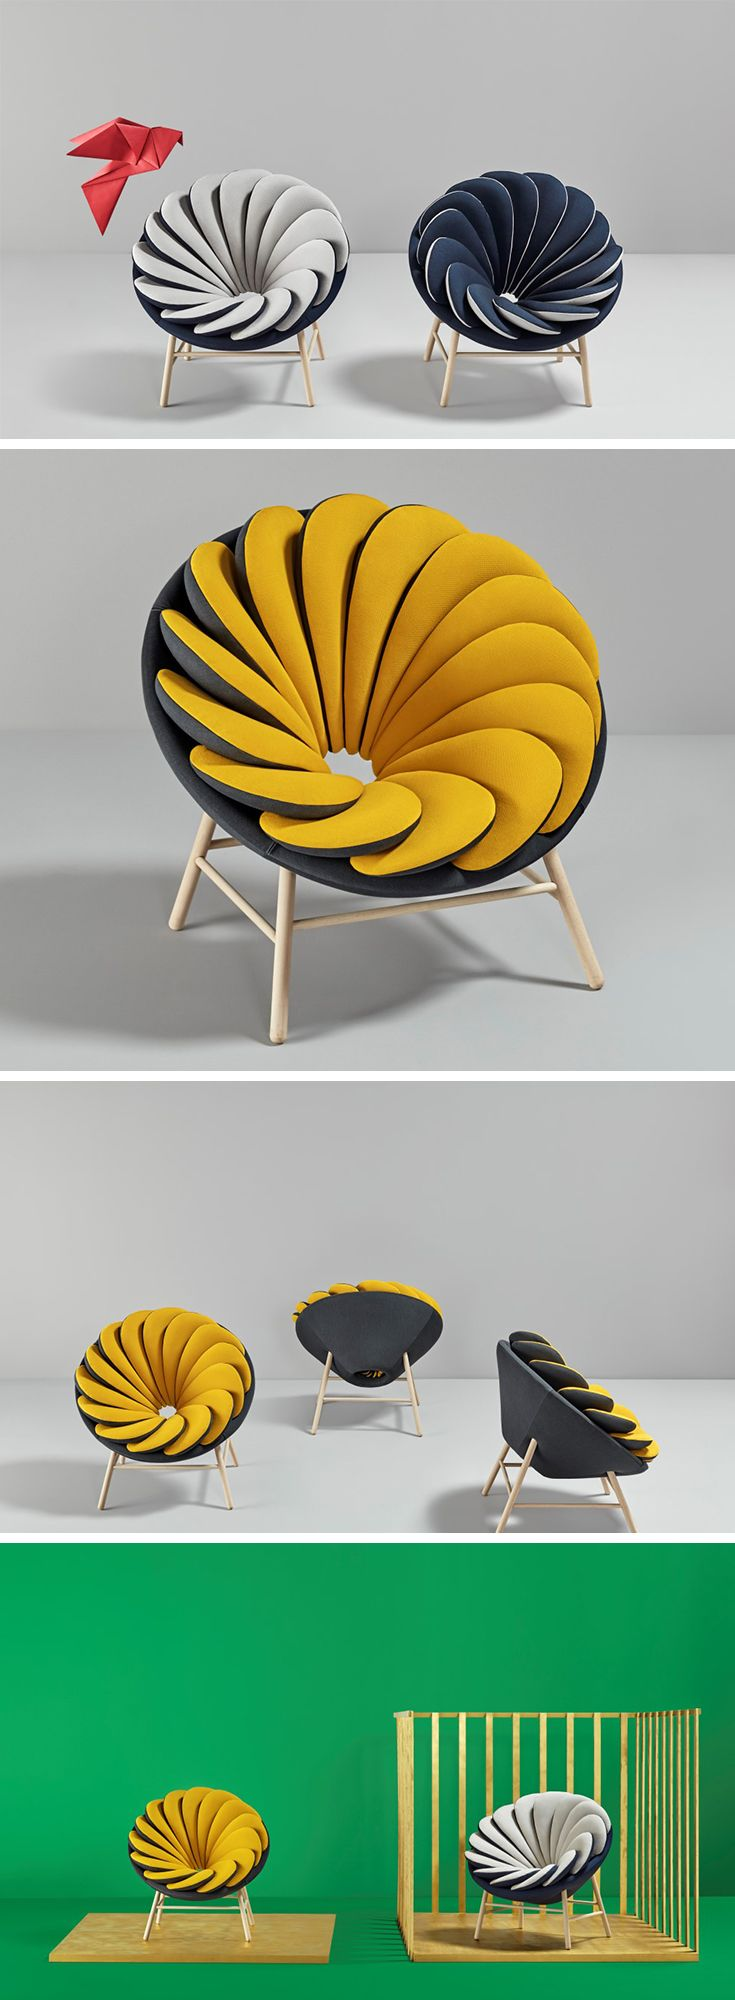 The Quetzal chair designed by Marc Venot for Missana comes in a flowery design with multiple pillows that fan outwards, resembling its inspiration, the Quetzal bird's plumage. What's interesting is the ability to flip over the pillows to change the color of the chair entirely, making it a chair that transcends traditional static furniture and the kind that can adapt to any interior setting.